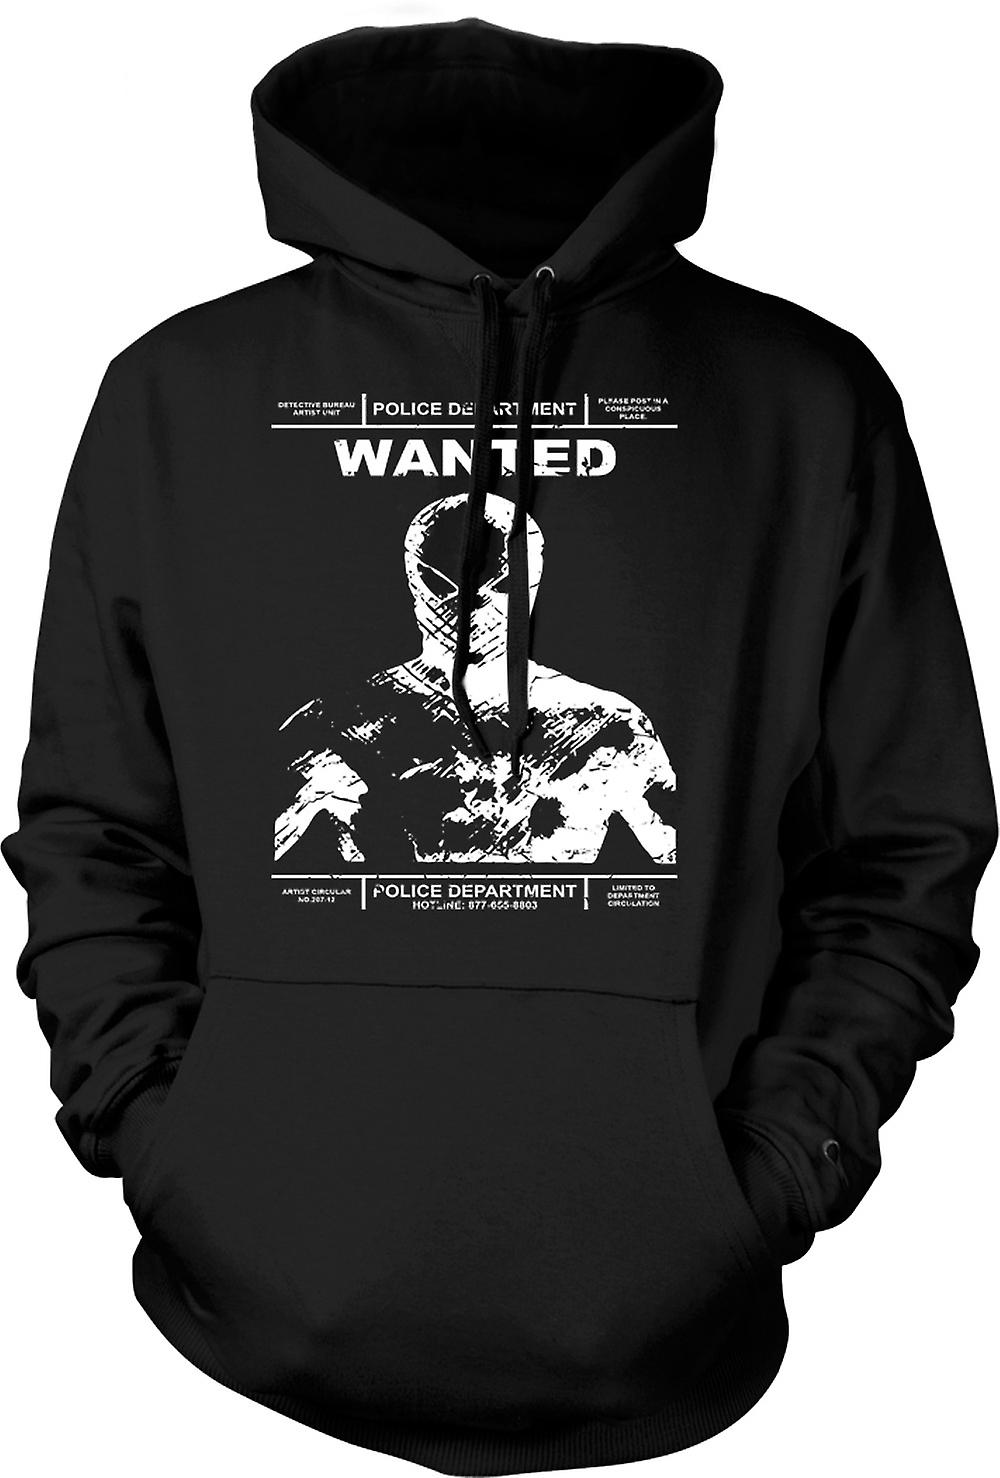 Mens Hoodie - Spiderman polizia Wanted Poster